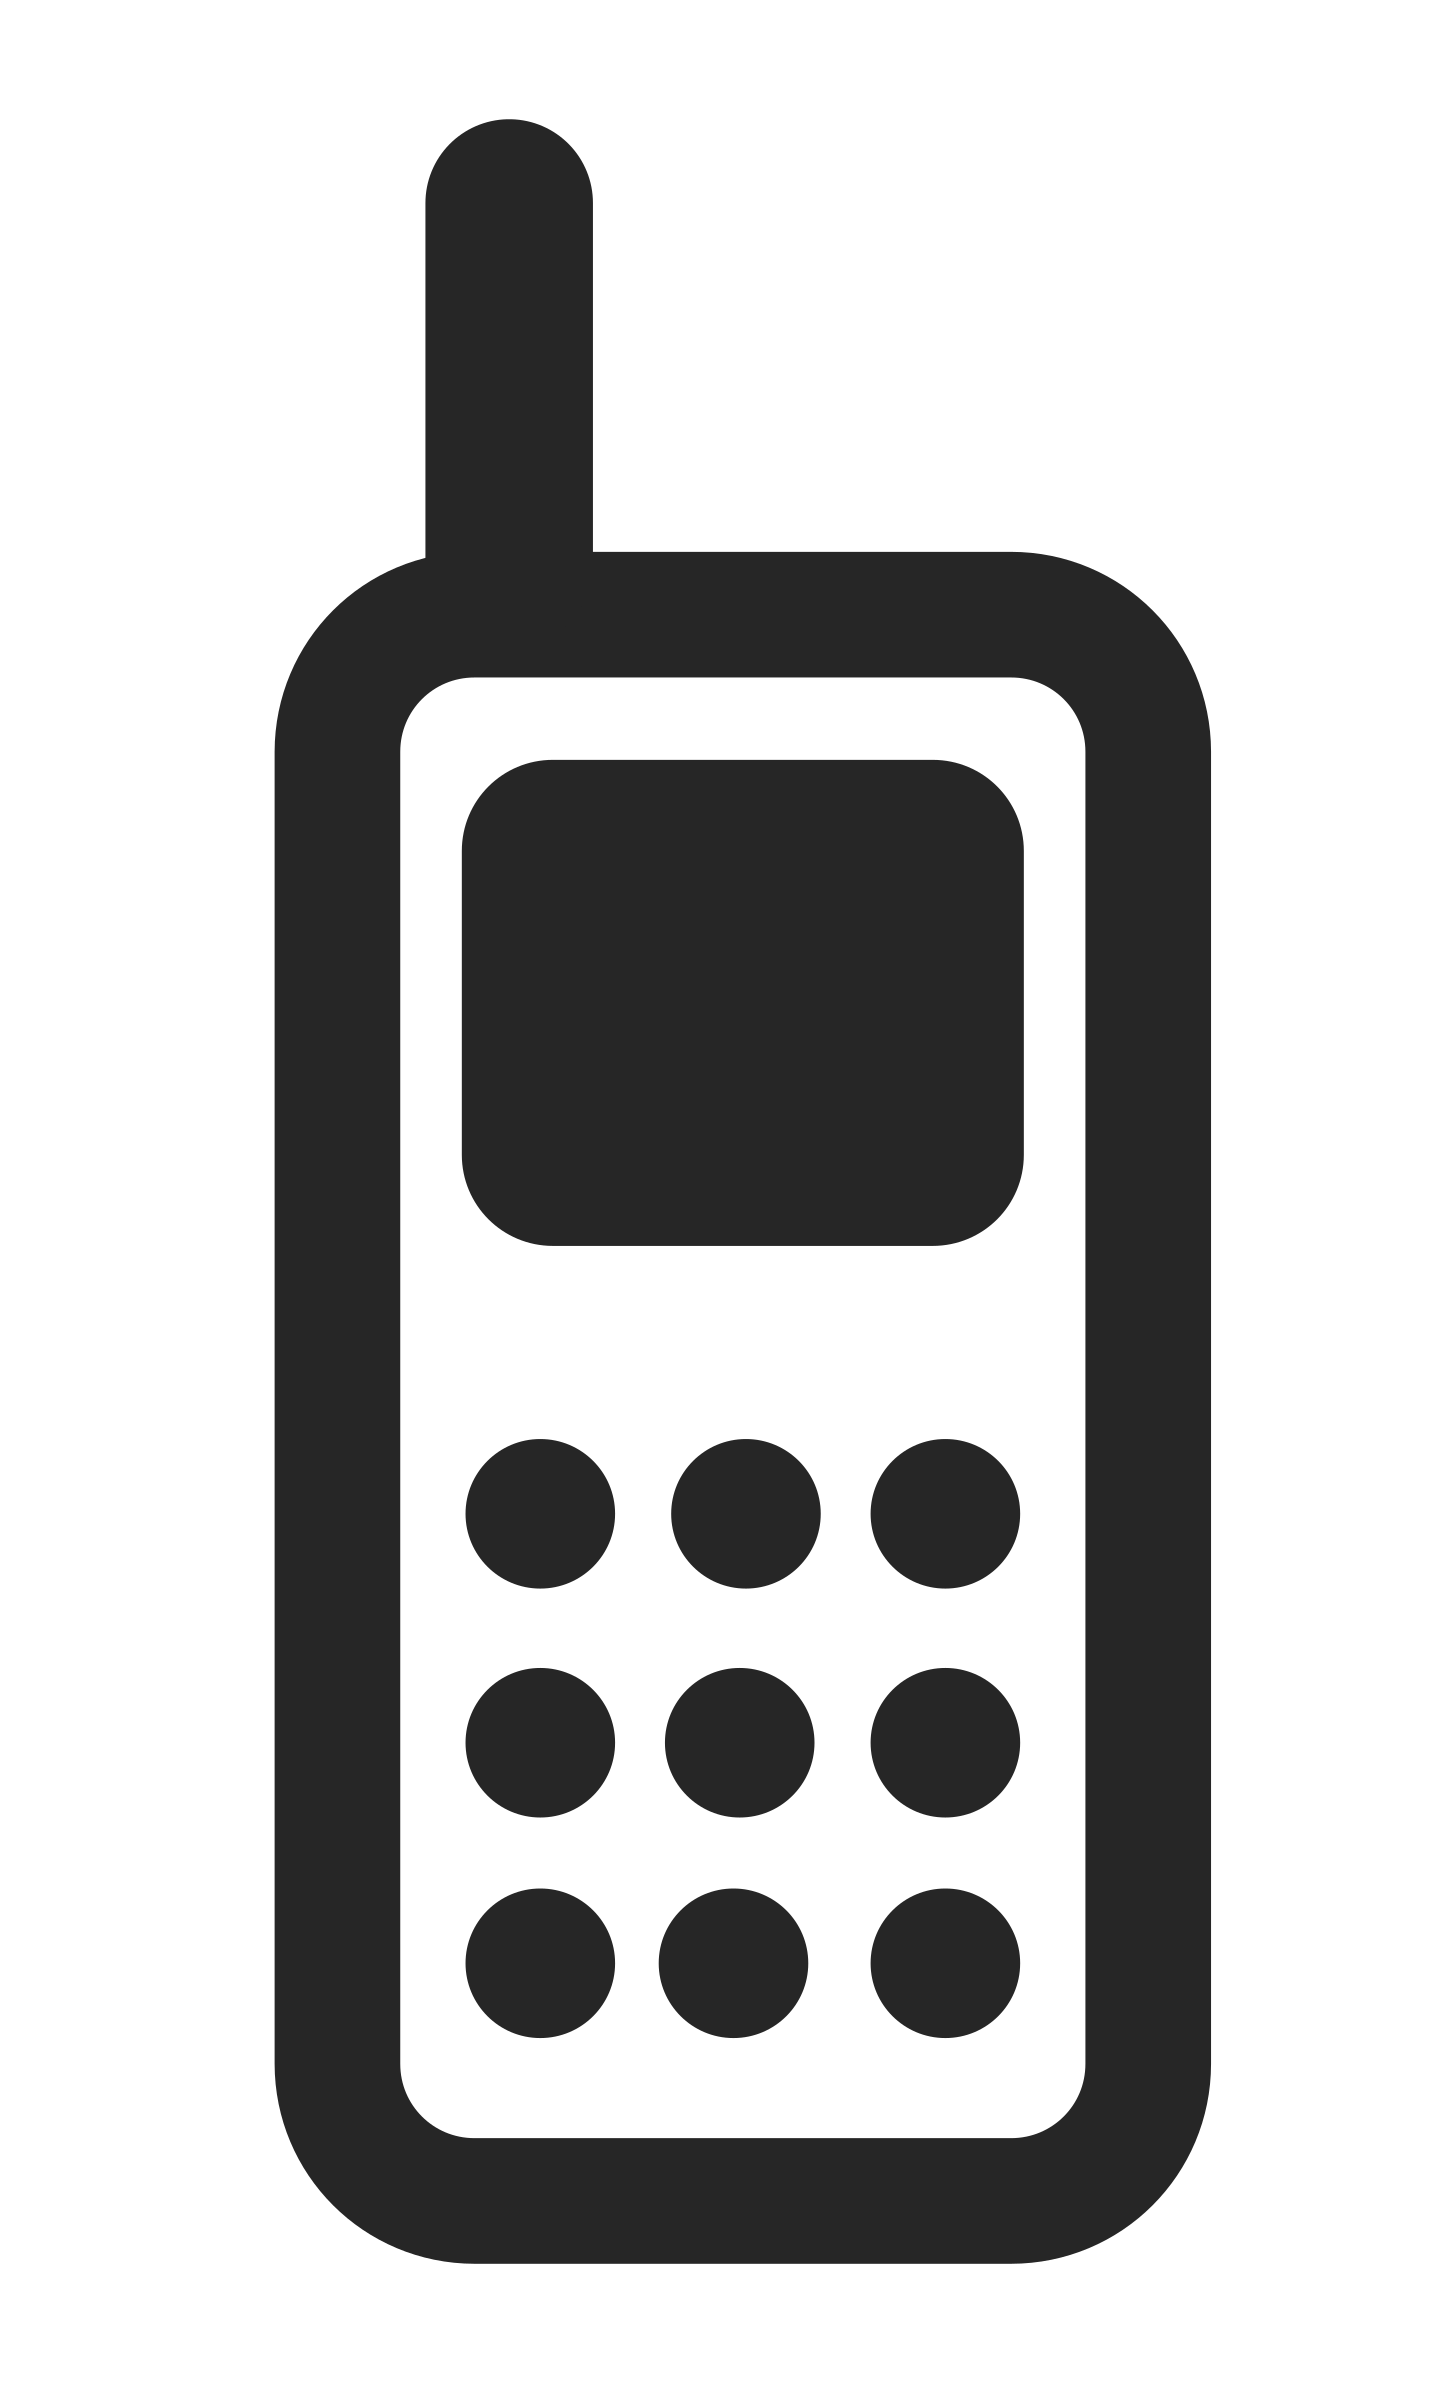 Telephone clipart teliphone. Mobile phone big image